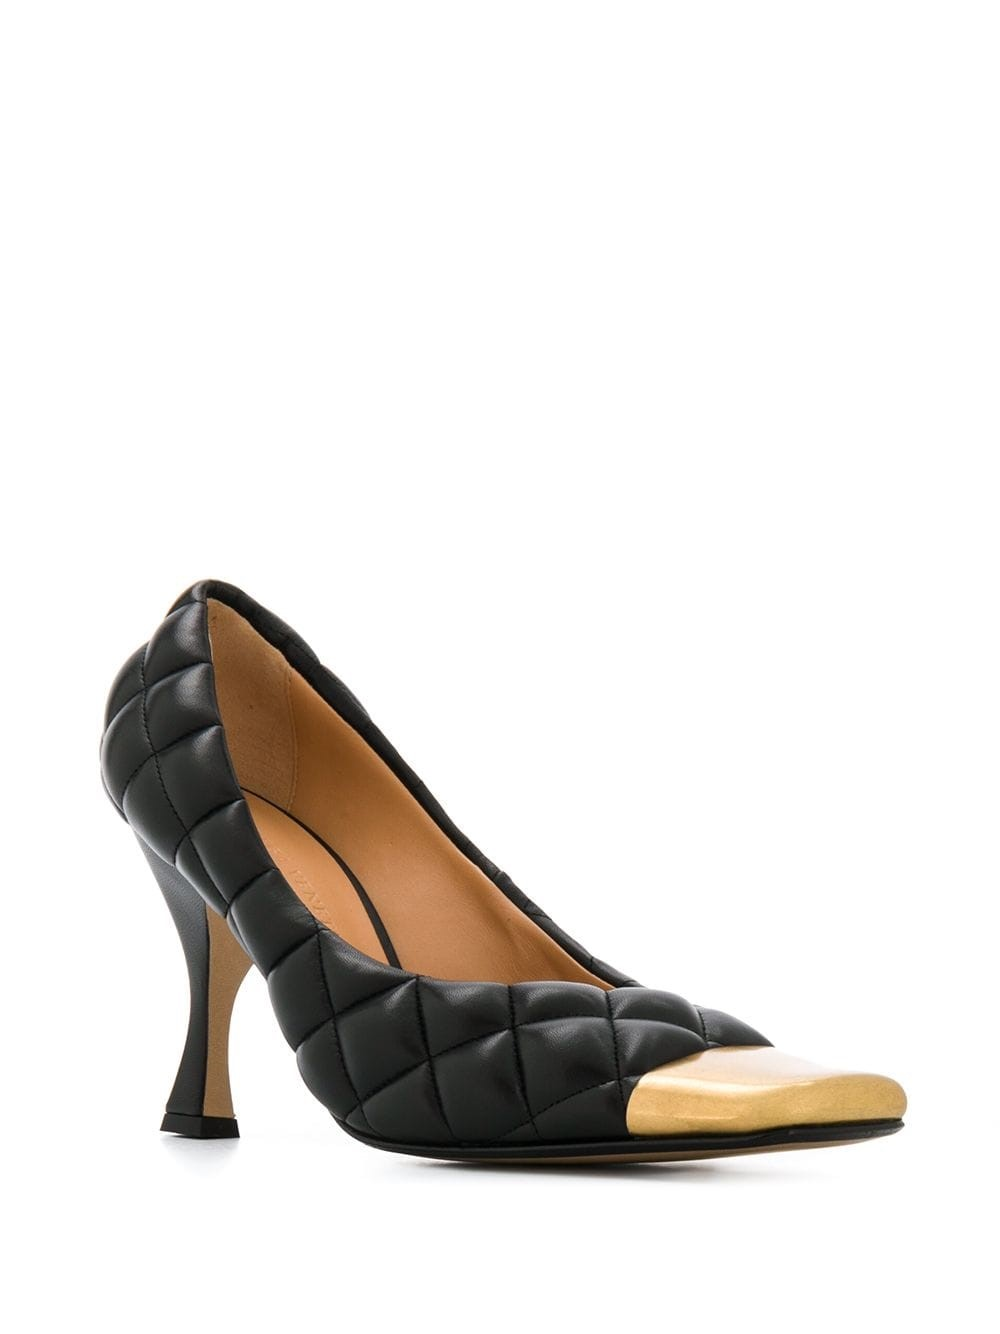 bottega veneta MATELLASSÈ PUMPS available on montiboutique.com - 31790